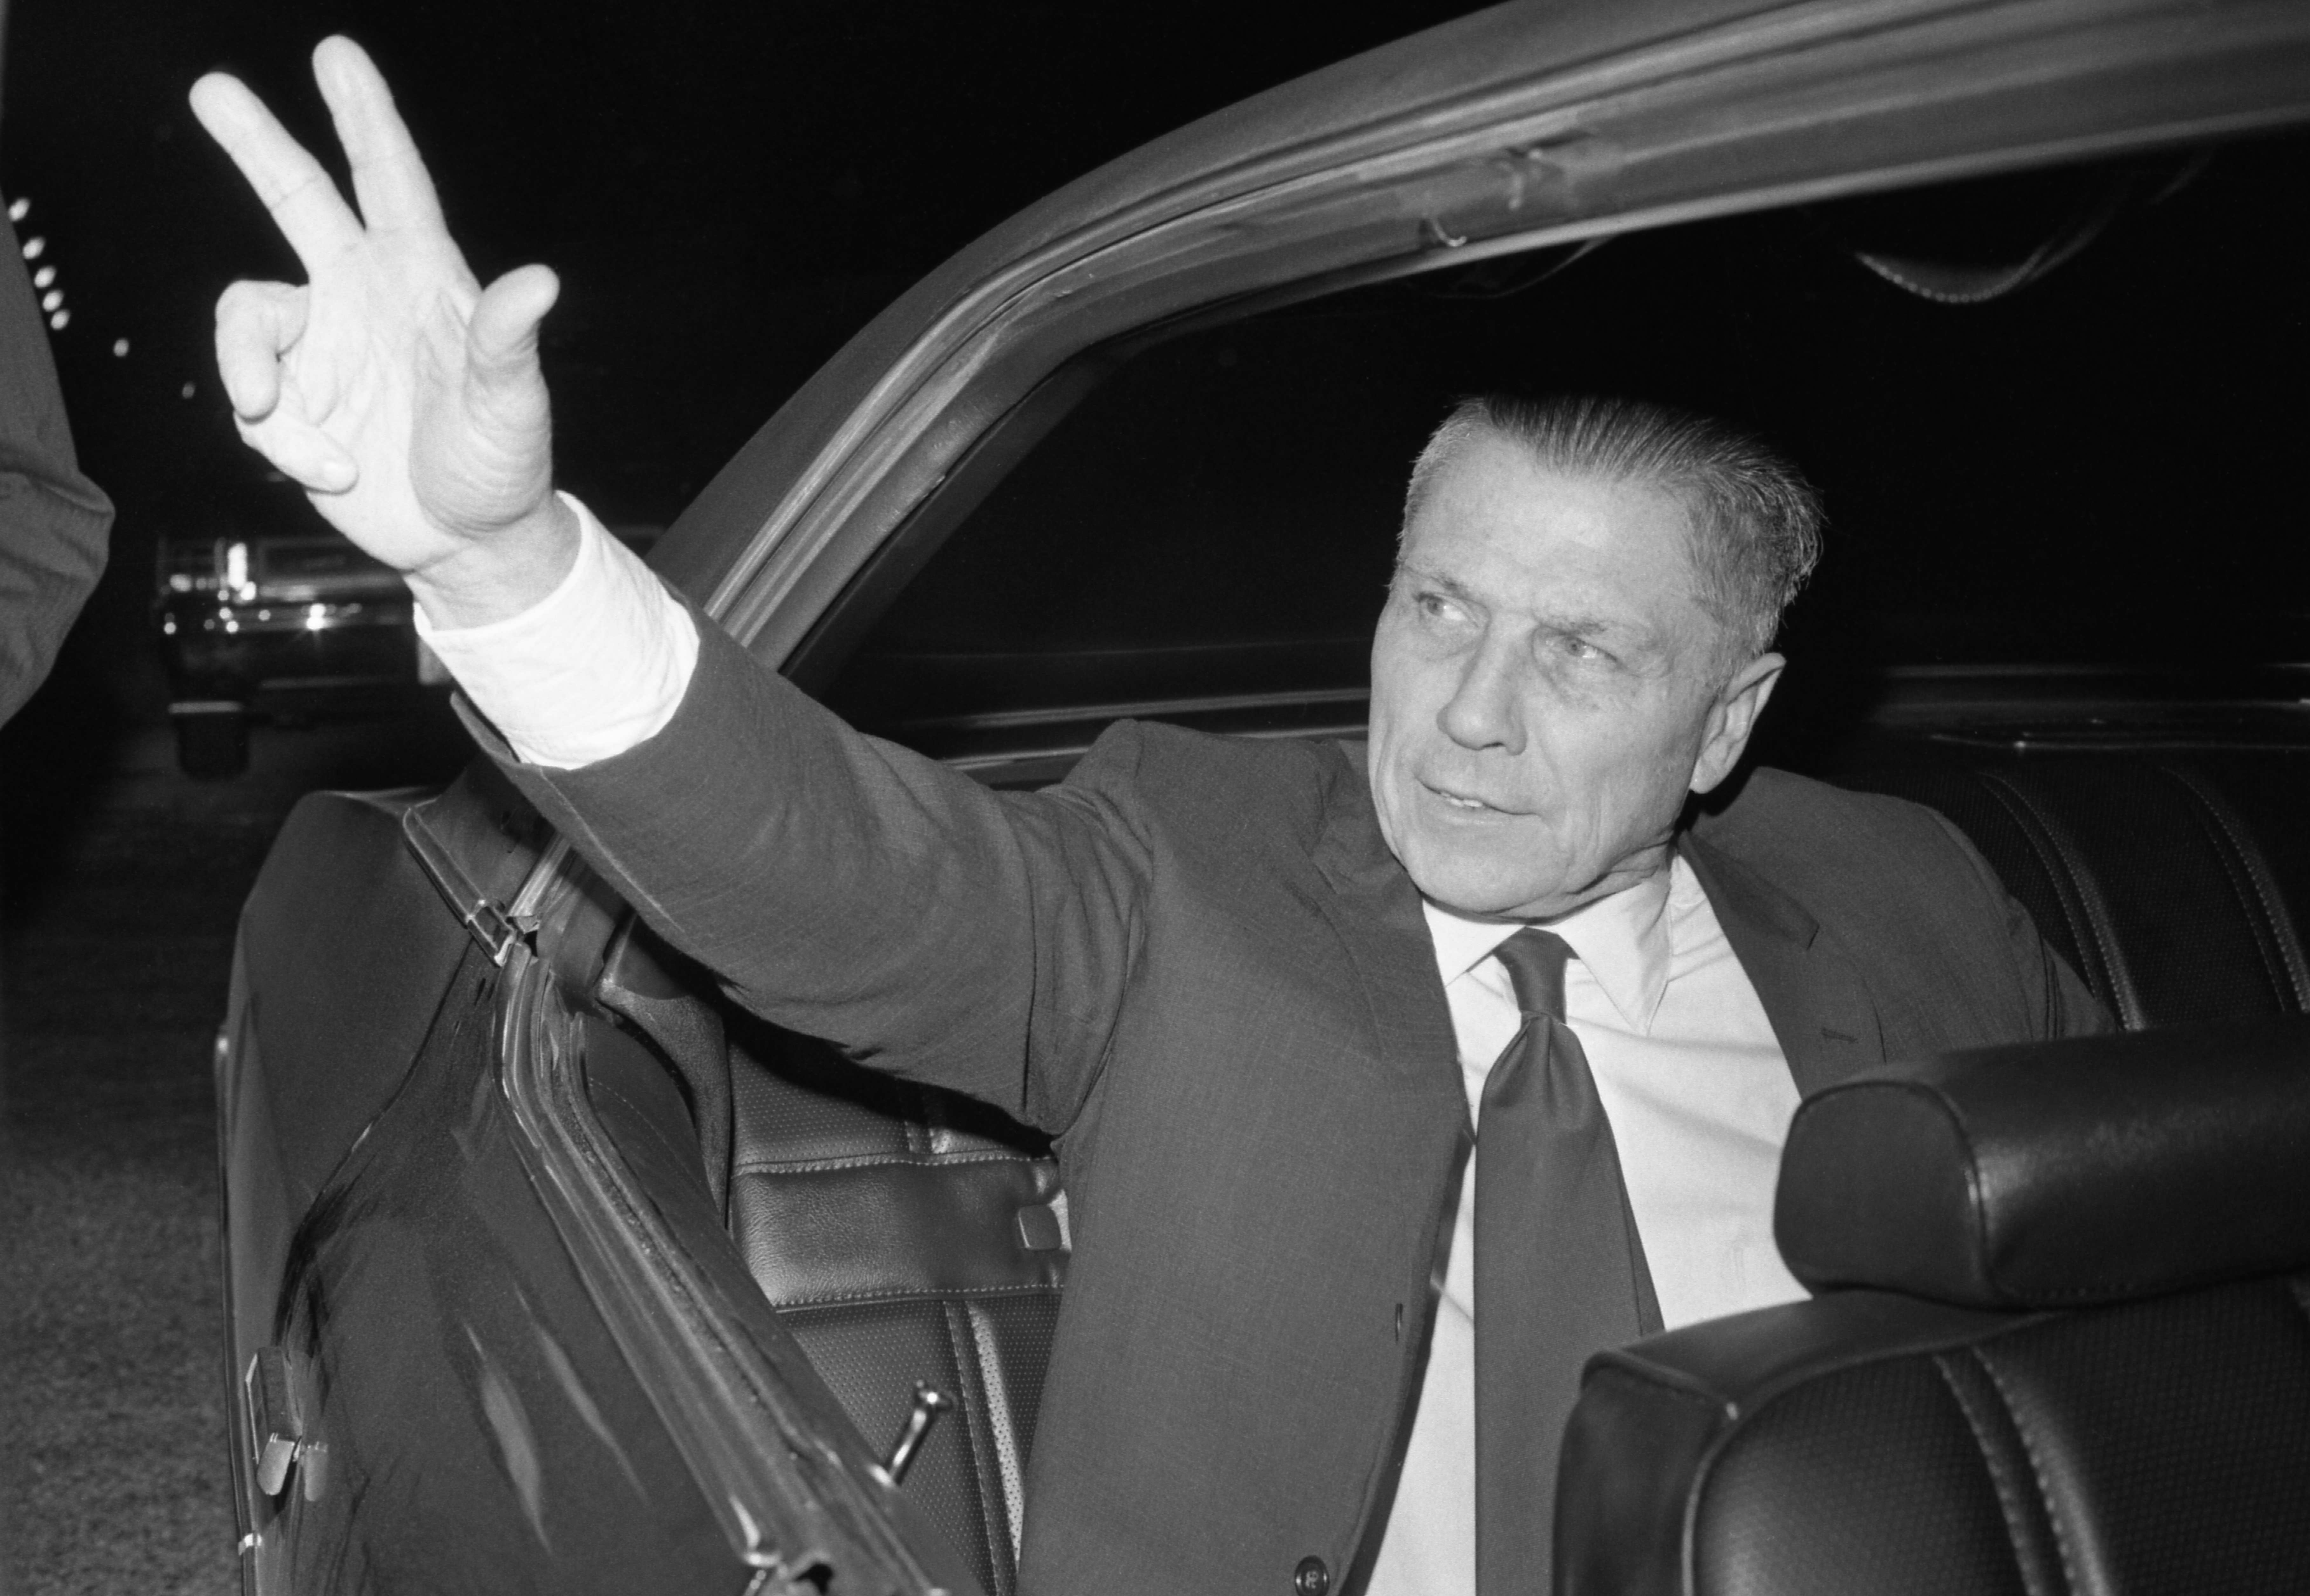 Hoffa Wars Author Claims to Have a Lead on Where Teamster Jimmy Hoffa Is Buried